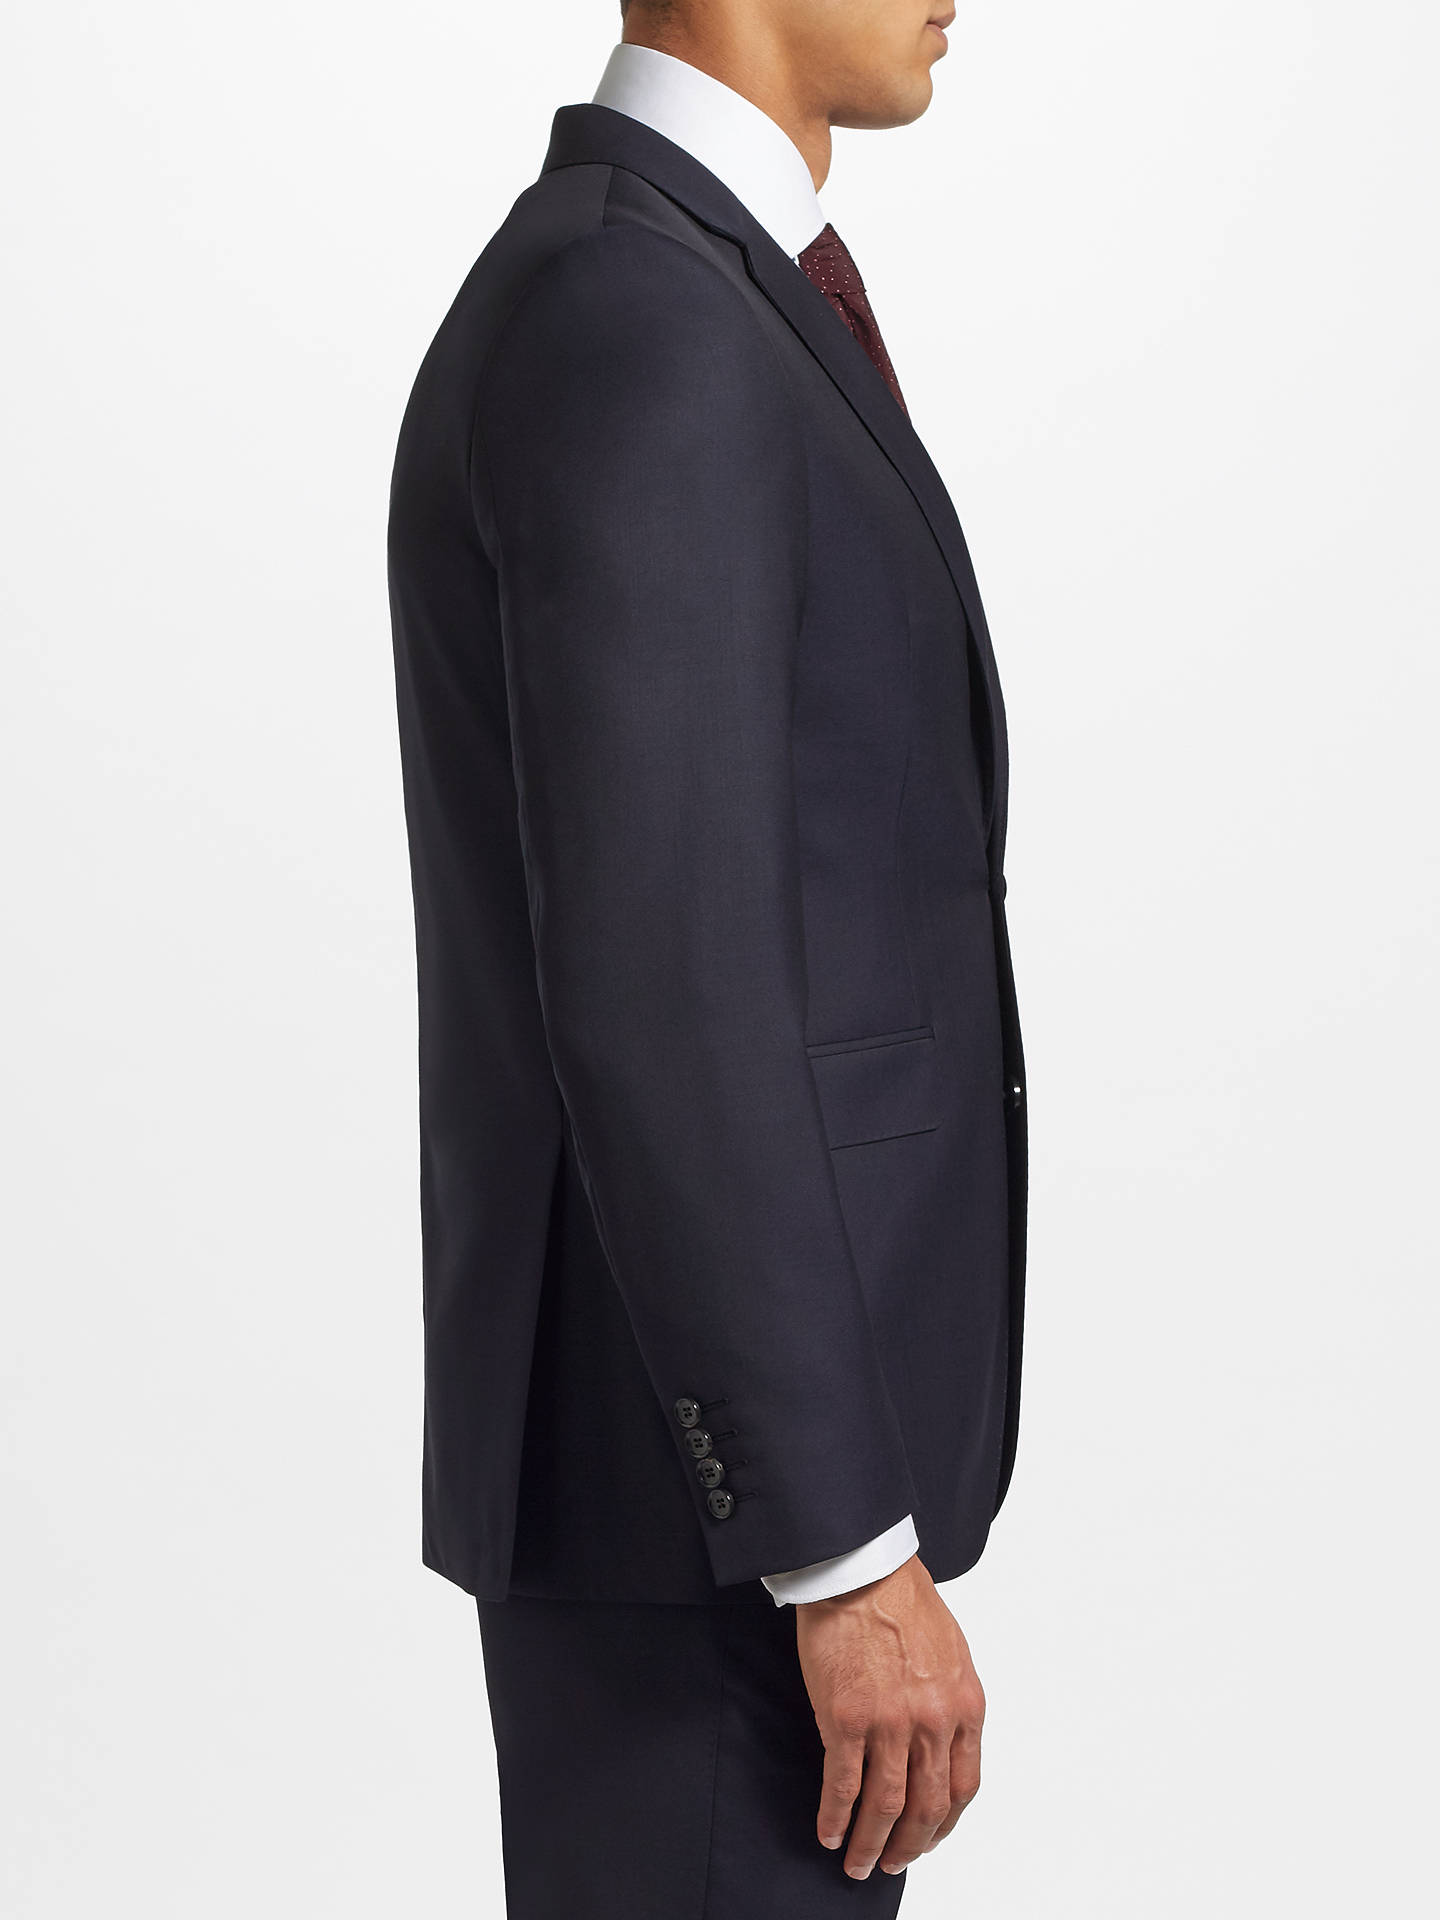 Buy John Lewis & Partners Ermenegildo Zegna Super 160s Wool Twill Half Canvas Tailored Suit Jacket, Navy, 40R Online at johnlewis.com